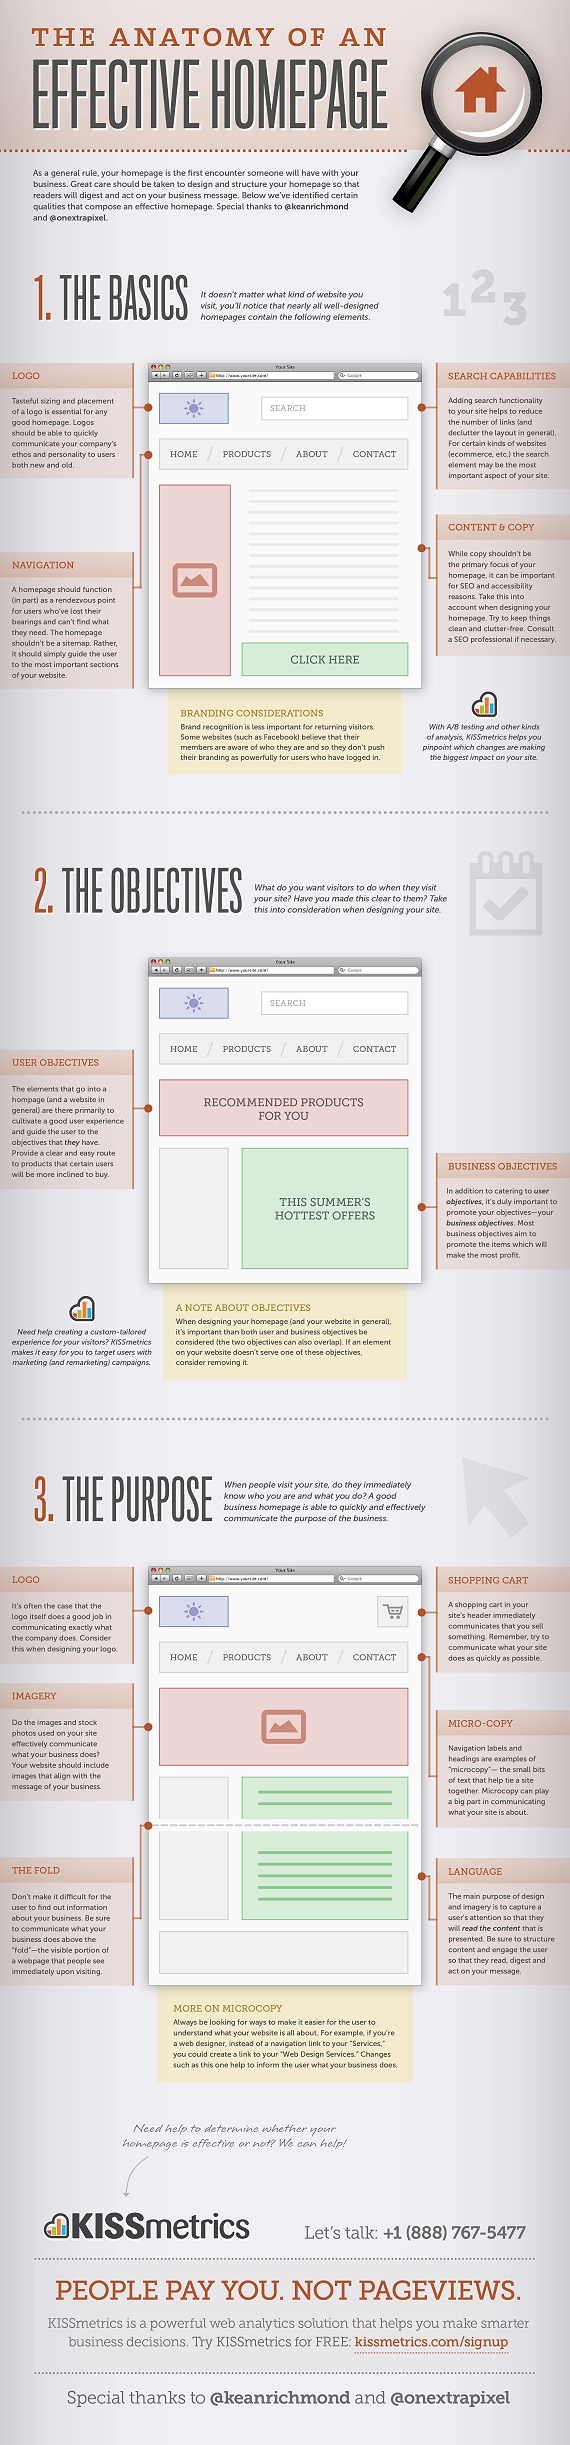 The-Anatomy-Of-An-Effective-Homepage-infographic